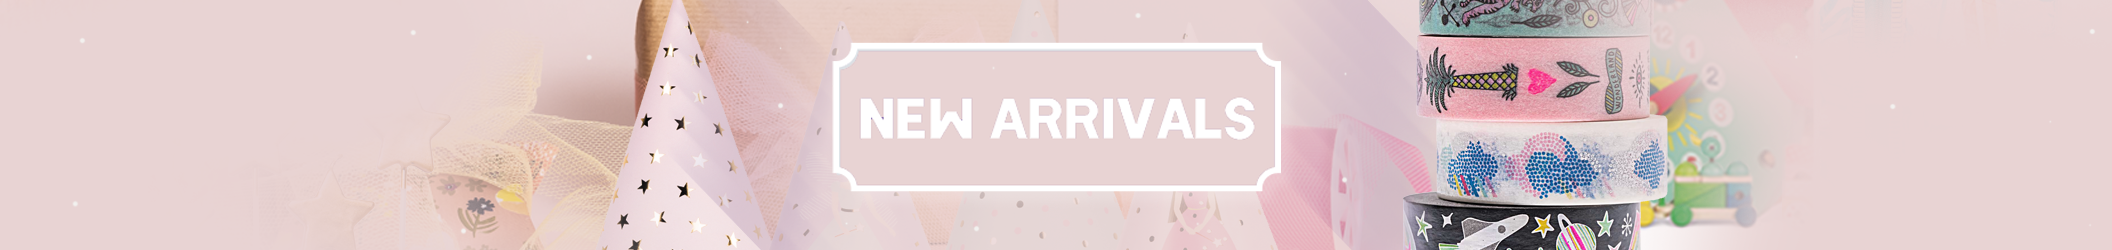 New Arrivals landing page banner